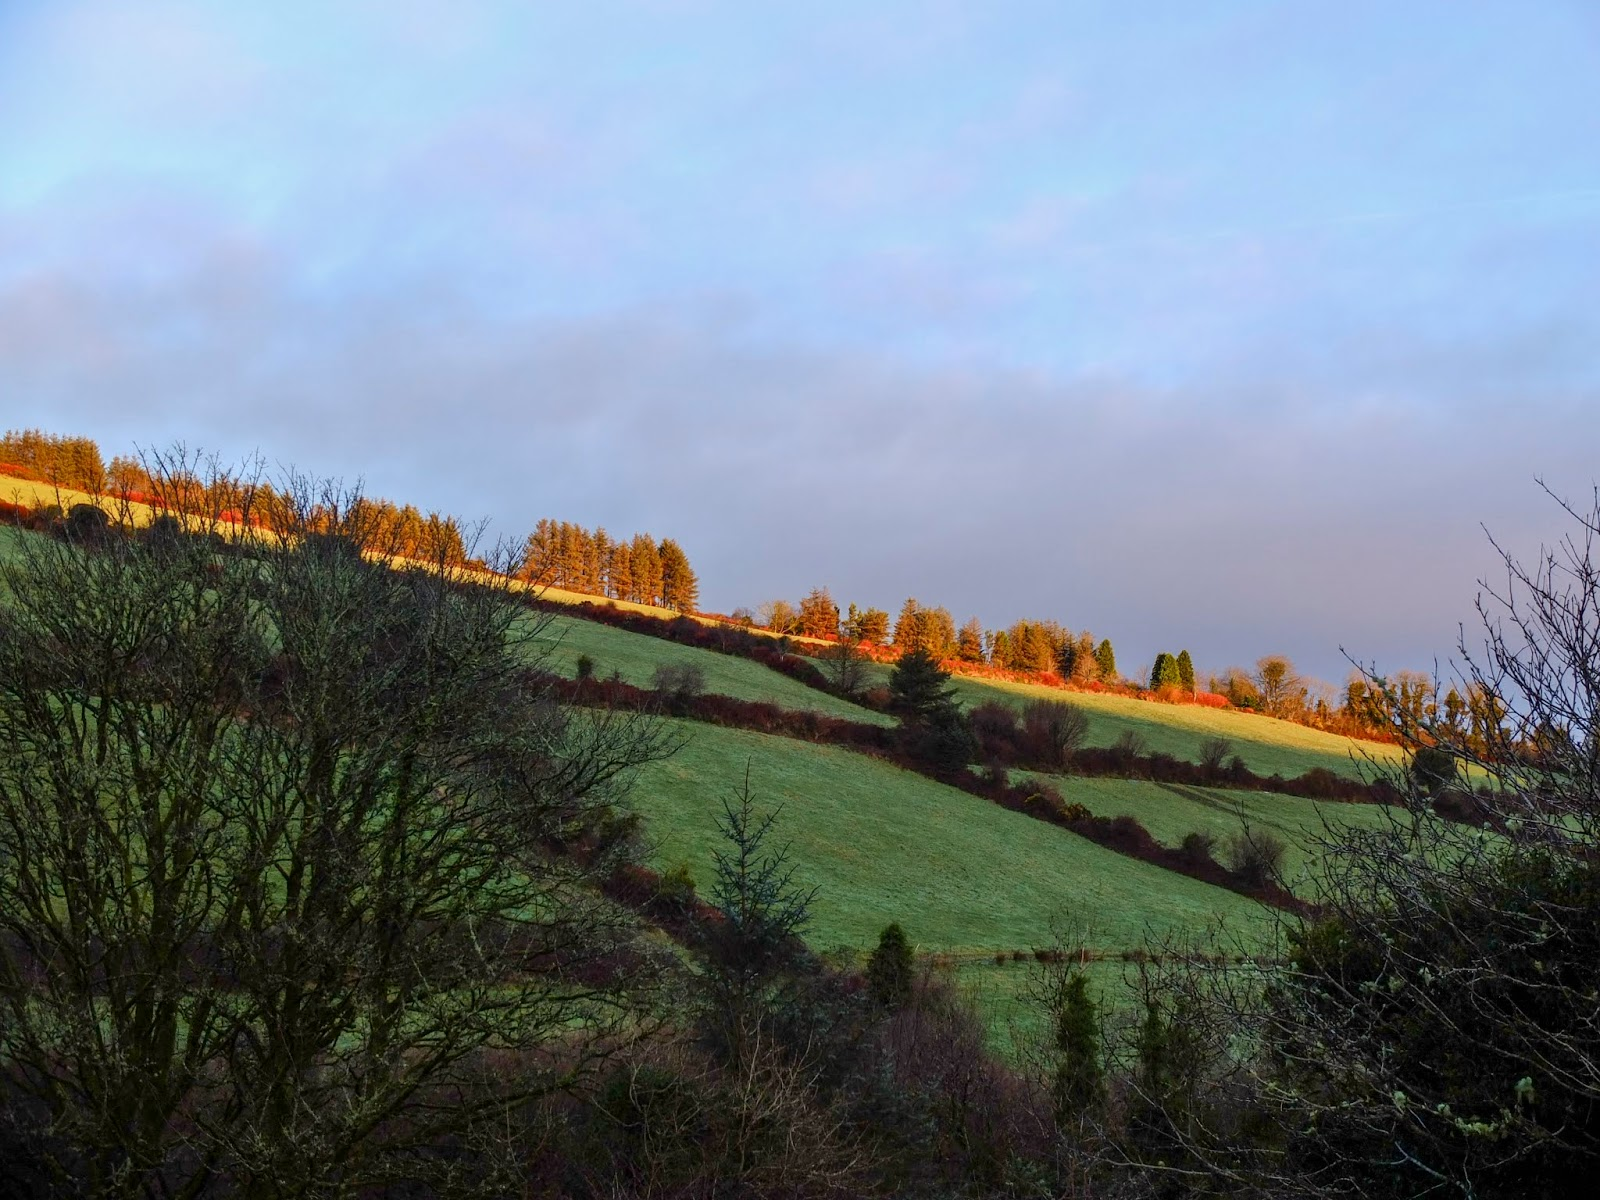 A sunlight beam across the top of the hillside illuminating some trees.